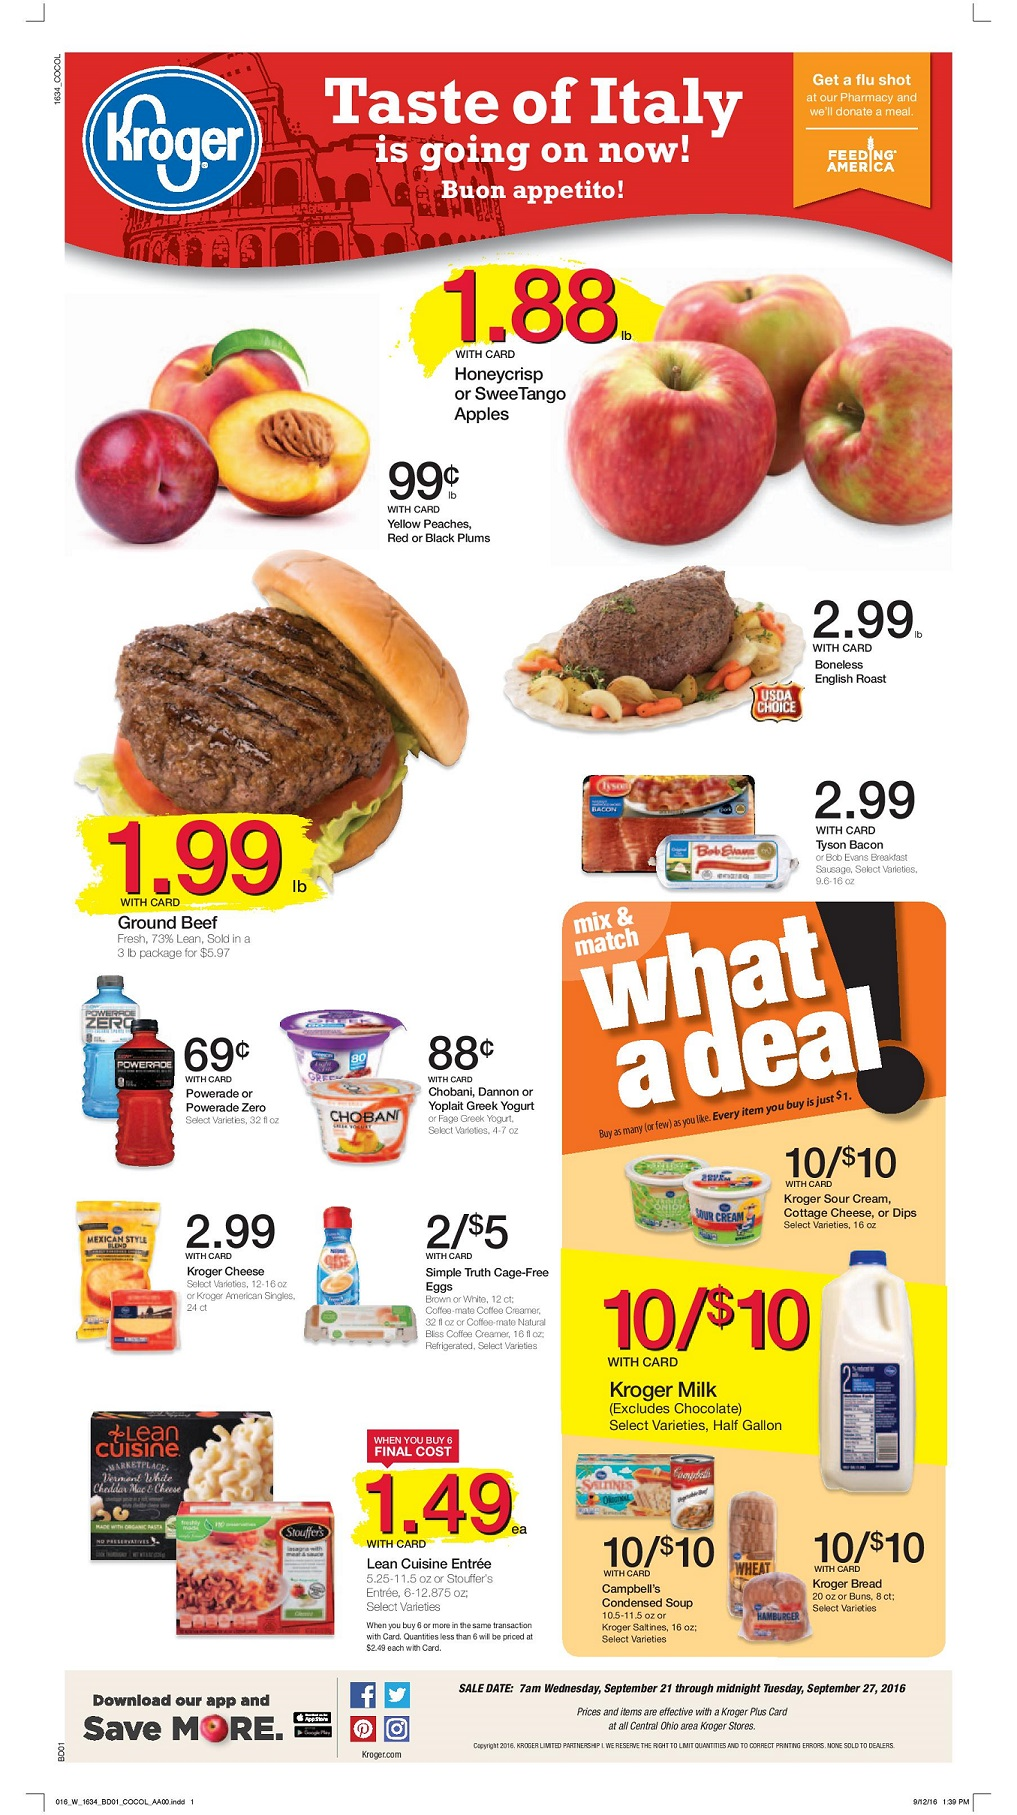 Kroger Early Ad Scan Preview 9/21